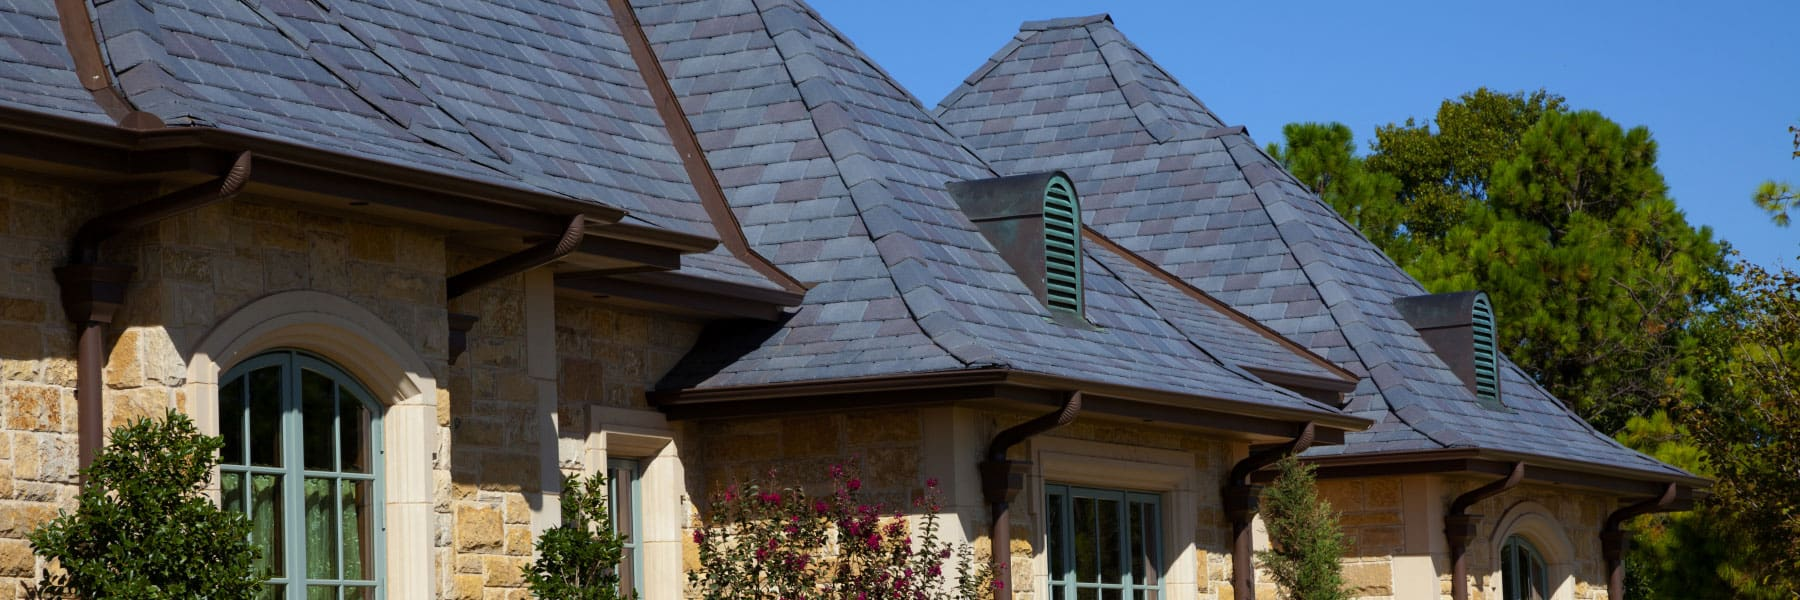 Outer Banks Seamless Aluminum Gutter   Gallop Roofing & Remodeling, Inc.